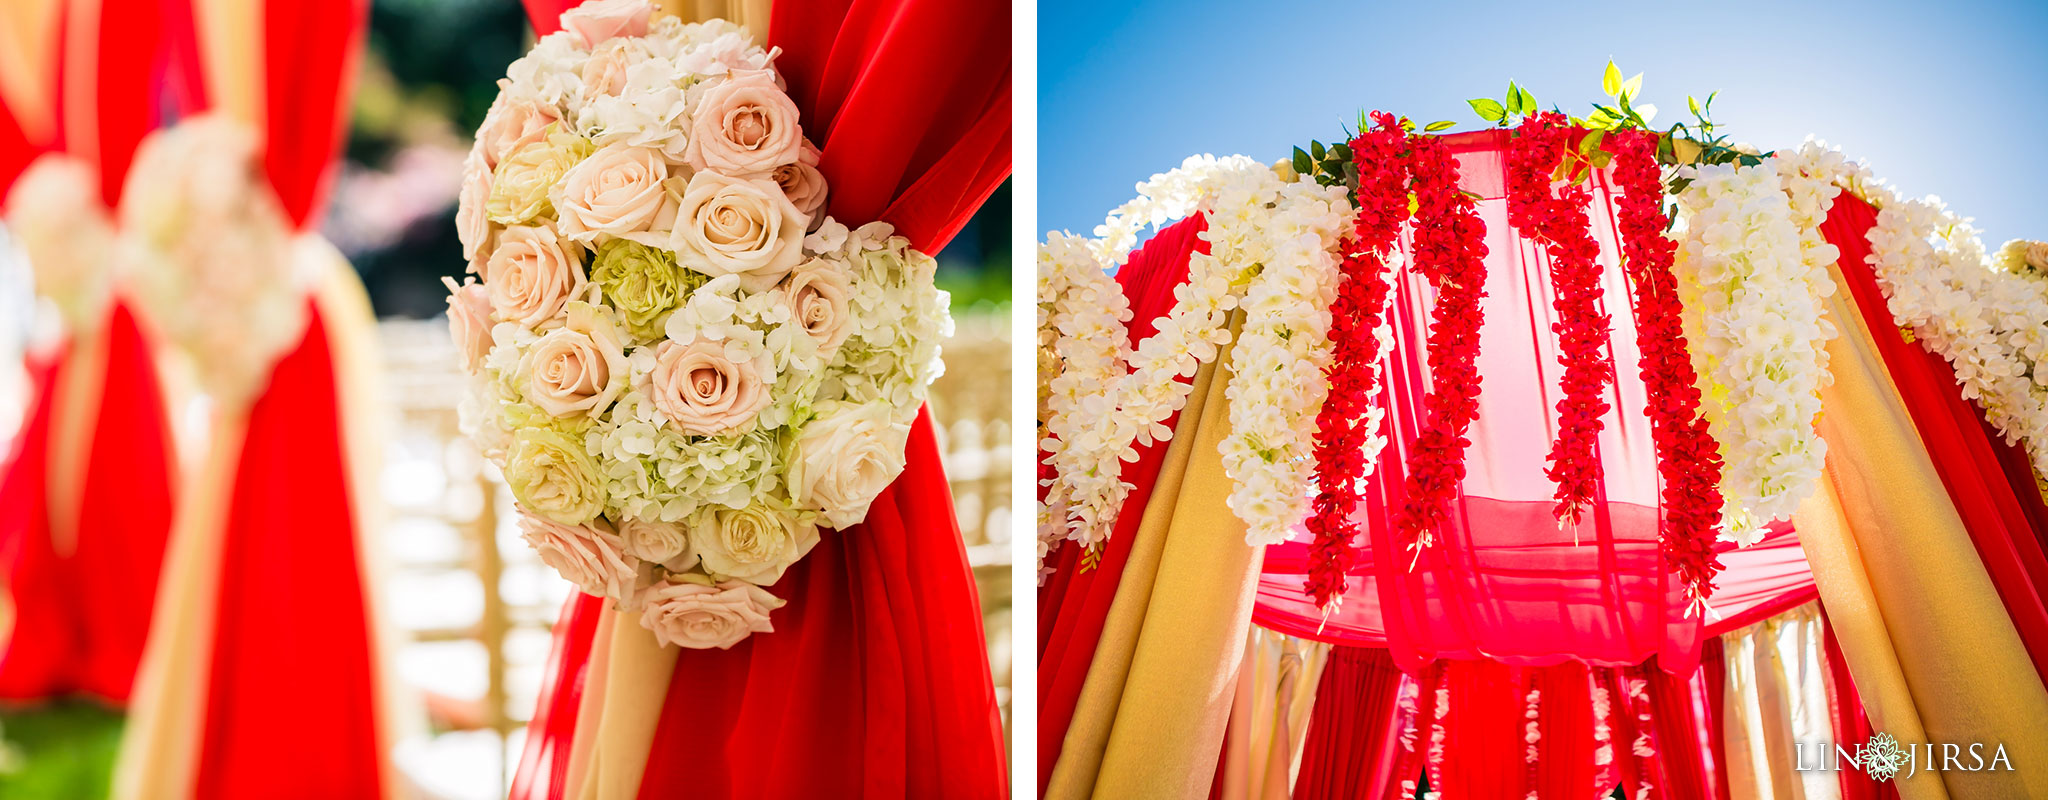 25 four seasons westlake village indian wedding ceremony photography